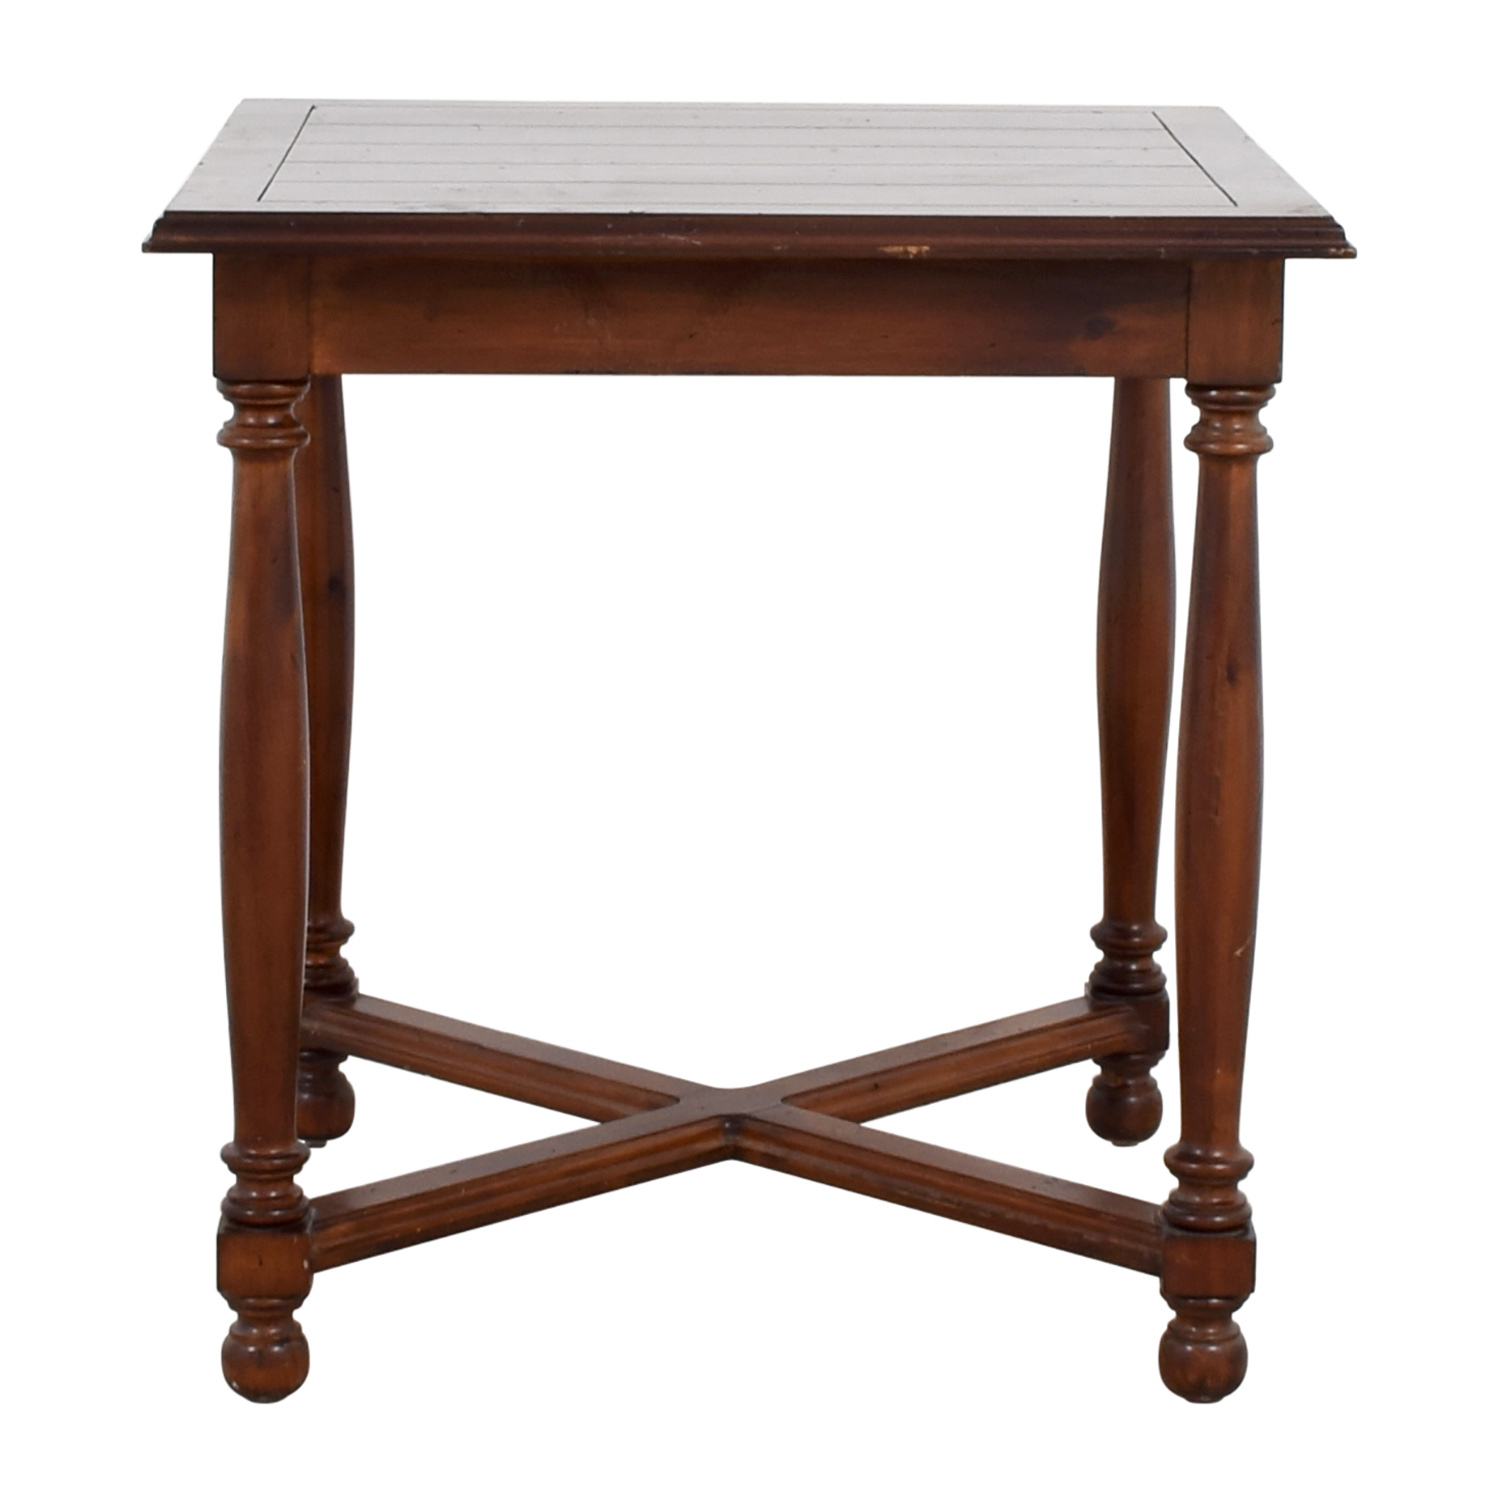 Furniture Masters Furniture Masters Crossed Base End Table dimensions